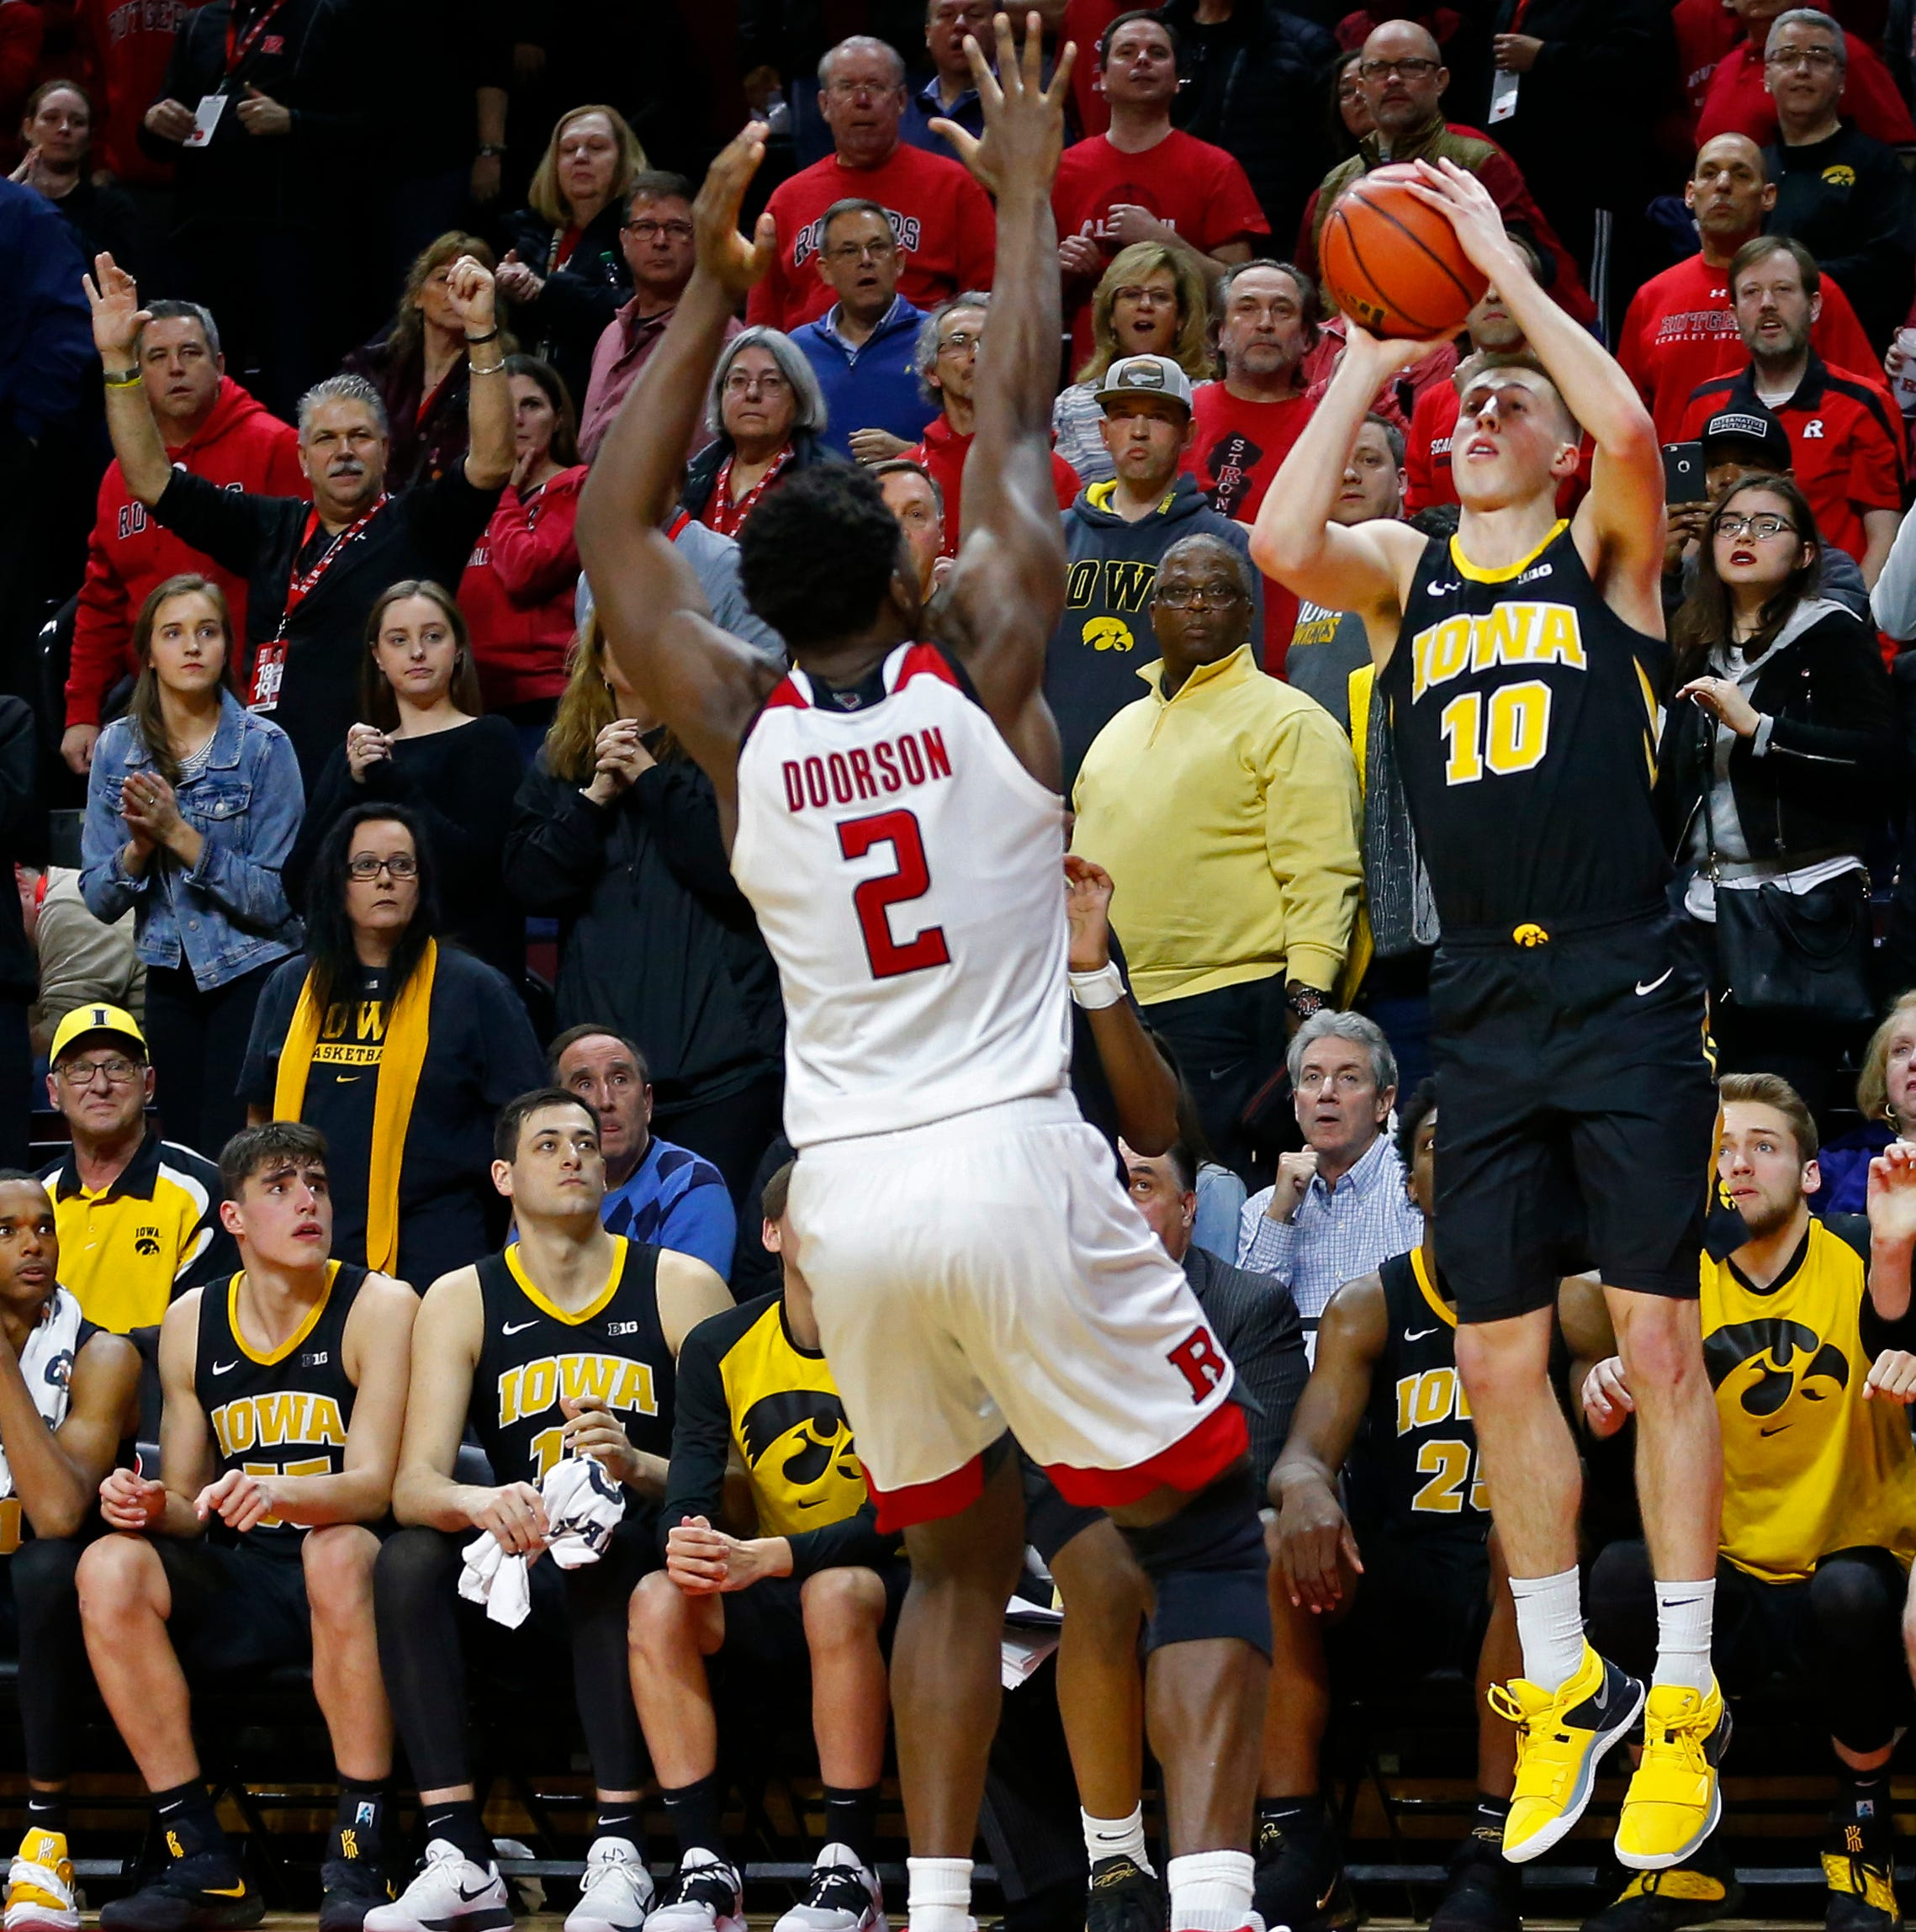 Joe Wieskamp saved the Hawkeyes with his crazy buzzer-beater — and the internet loved it